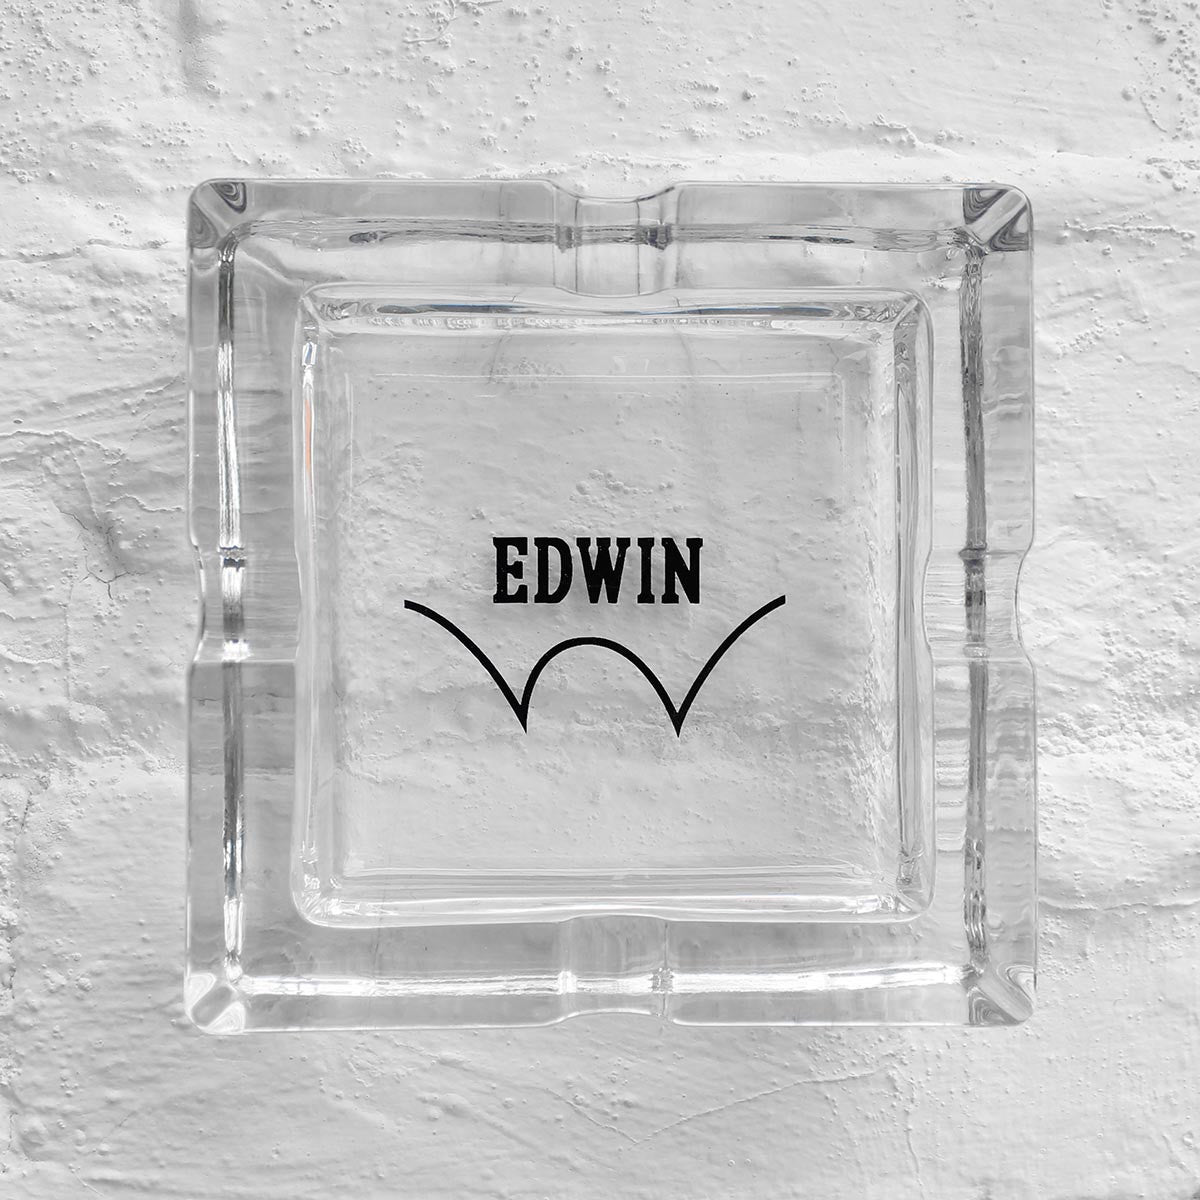 Edwin Ashtray Glass